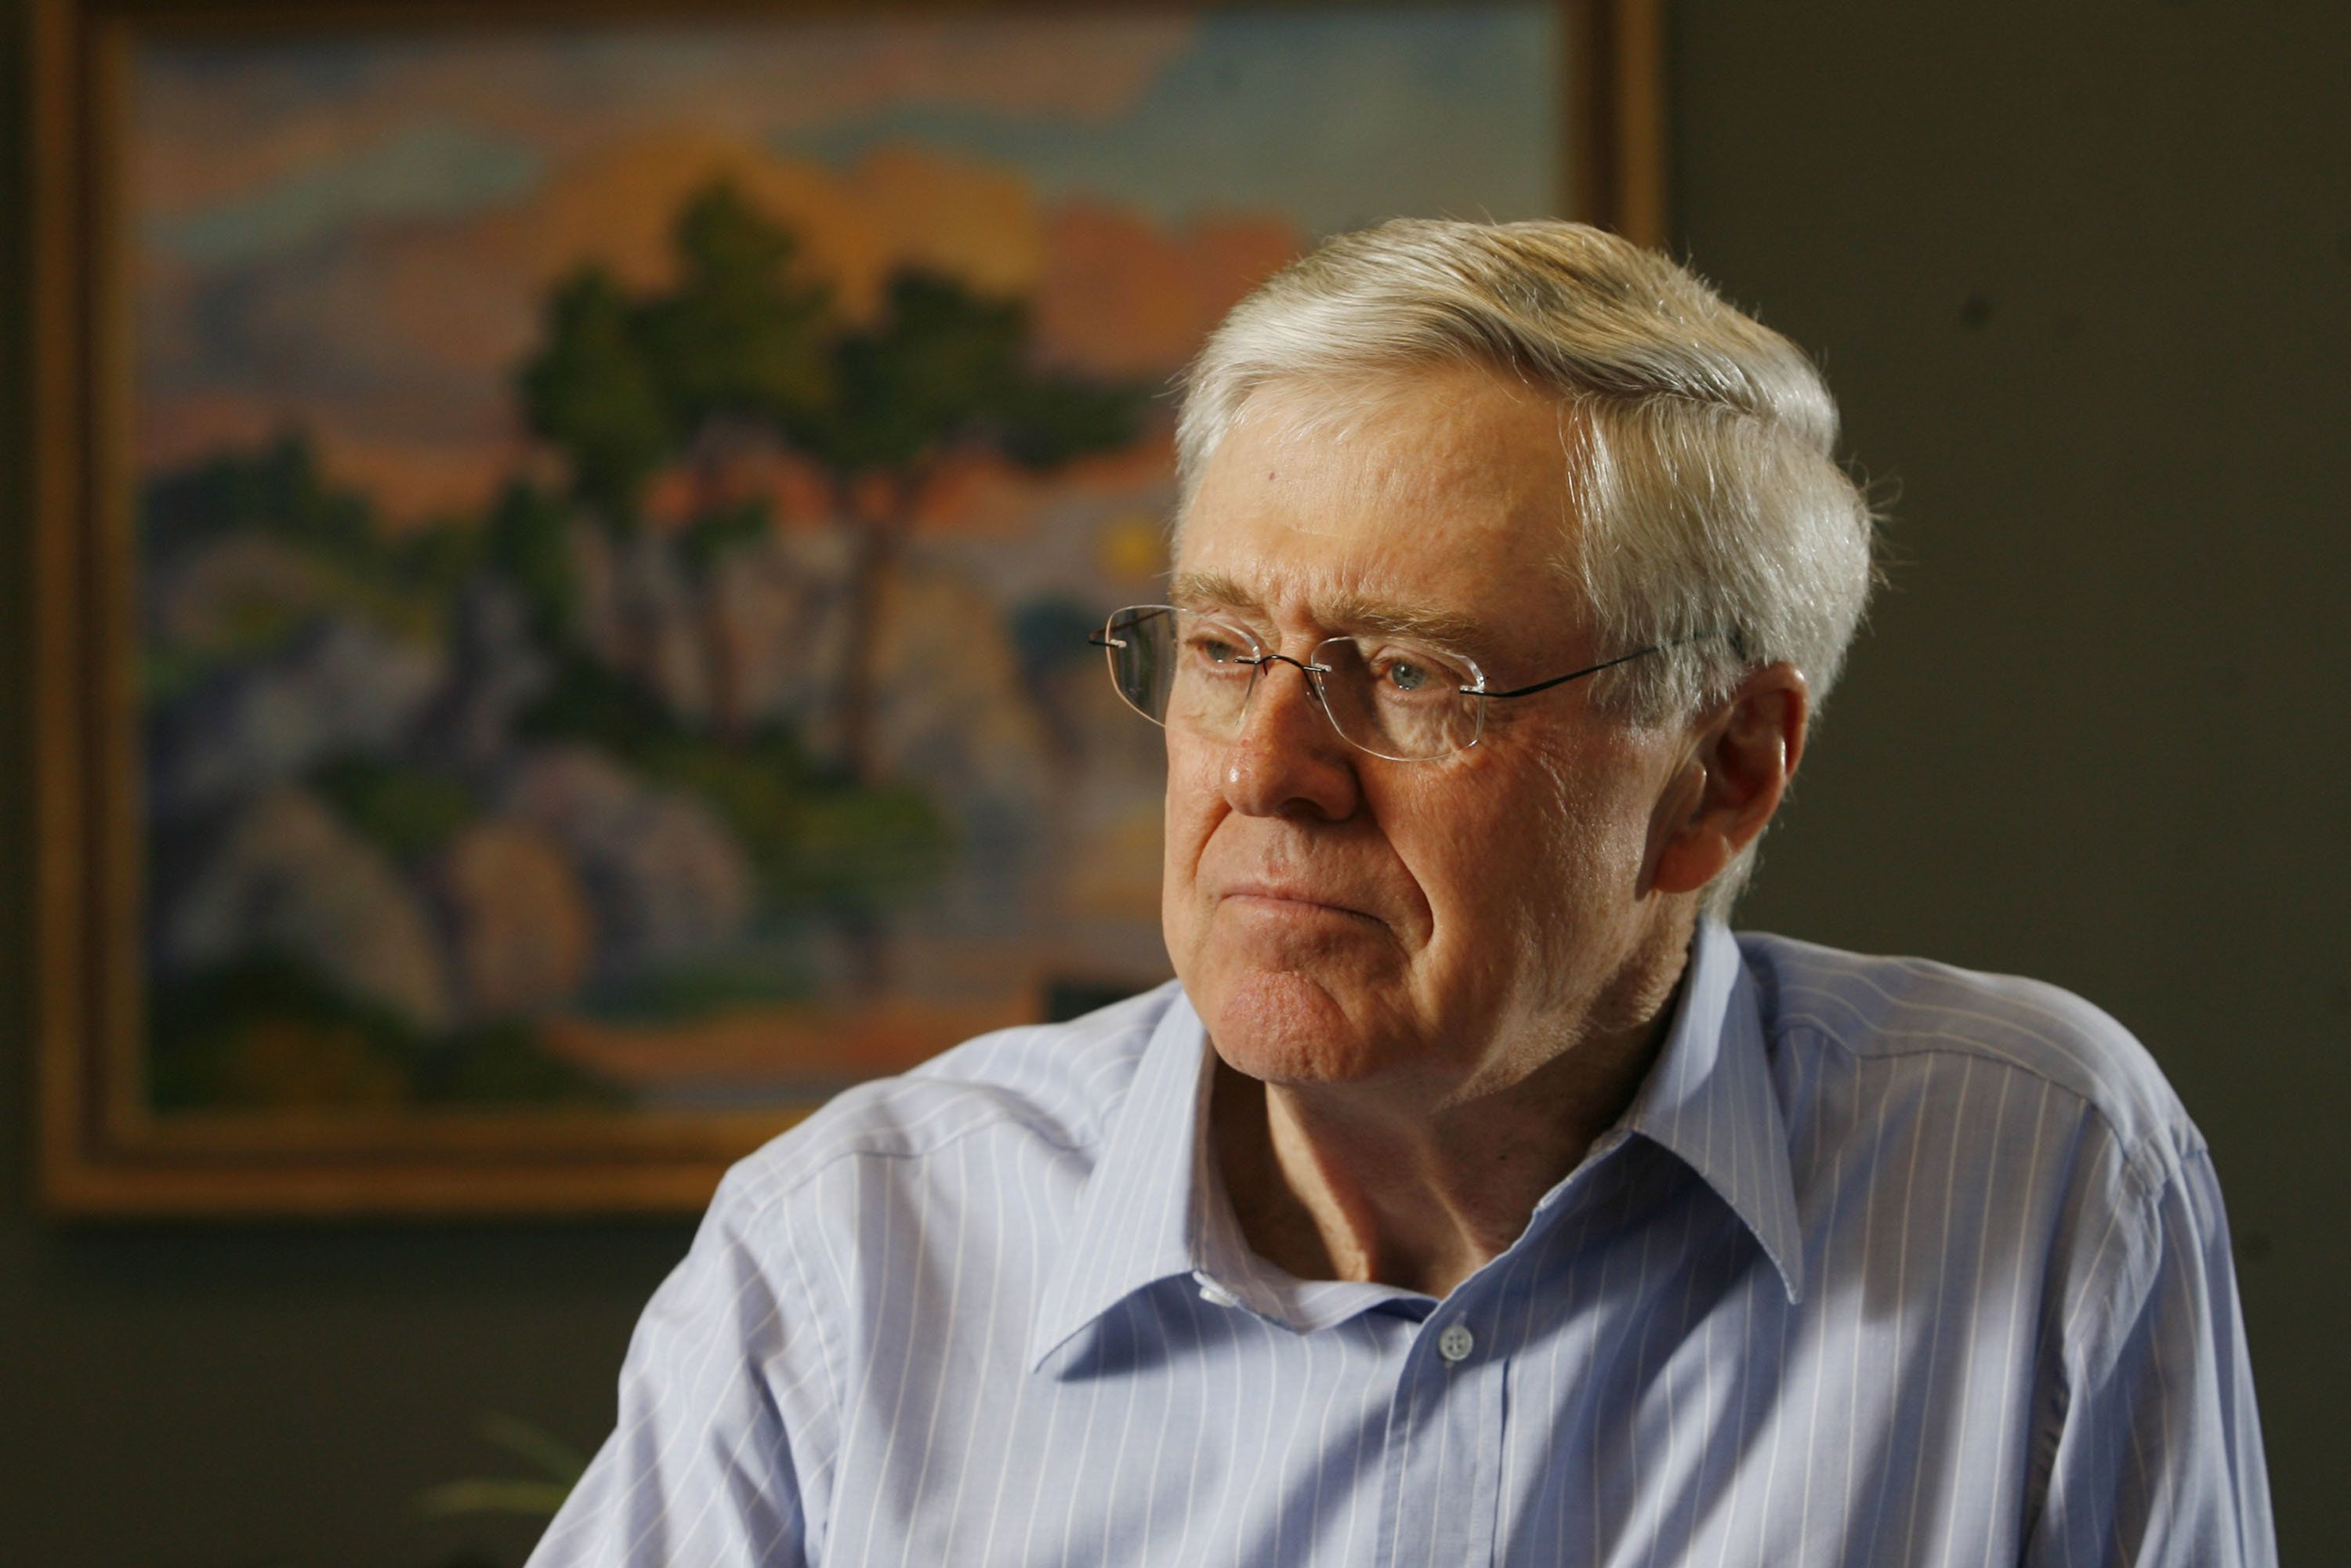 Multibillionaire Charles Koch, pictured in a 2007 file photo, founded the donor network tofund conservative causes.